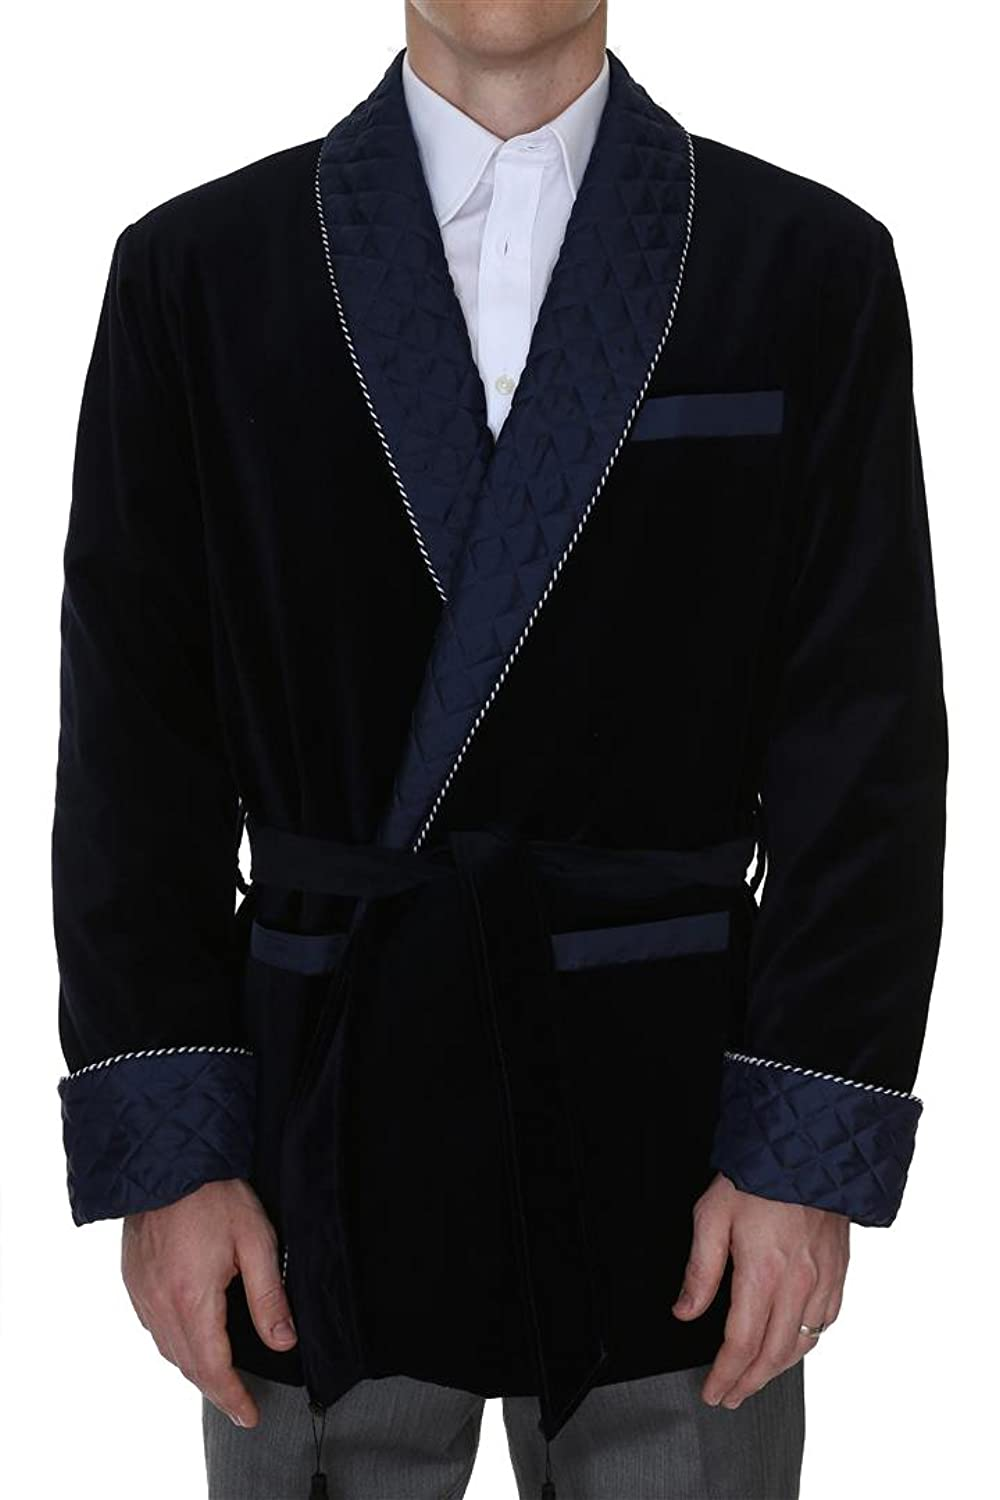 Men's Vintage Style Coats and Jackets Mens Smoking Jacket Bartholomew Navy $399.95 AT vintagedancer.com